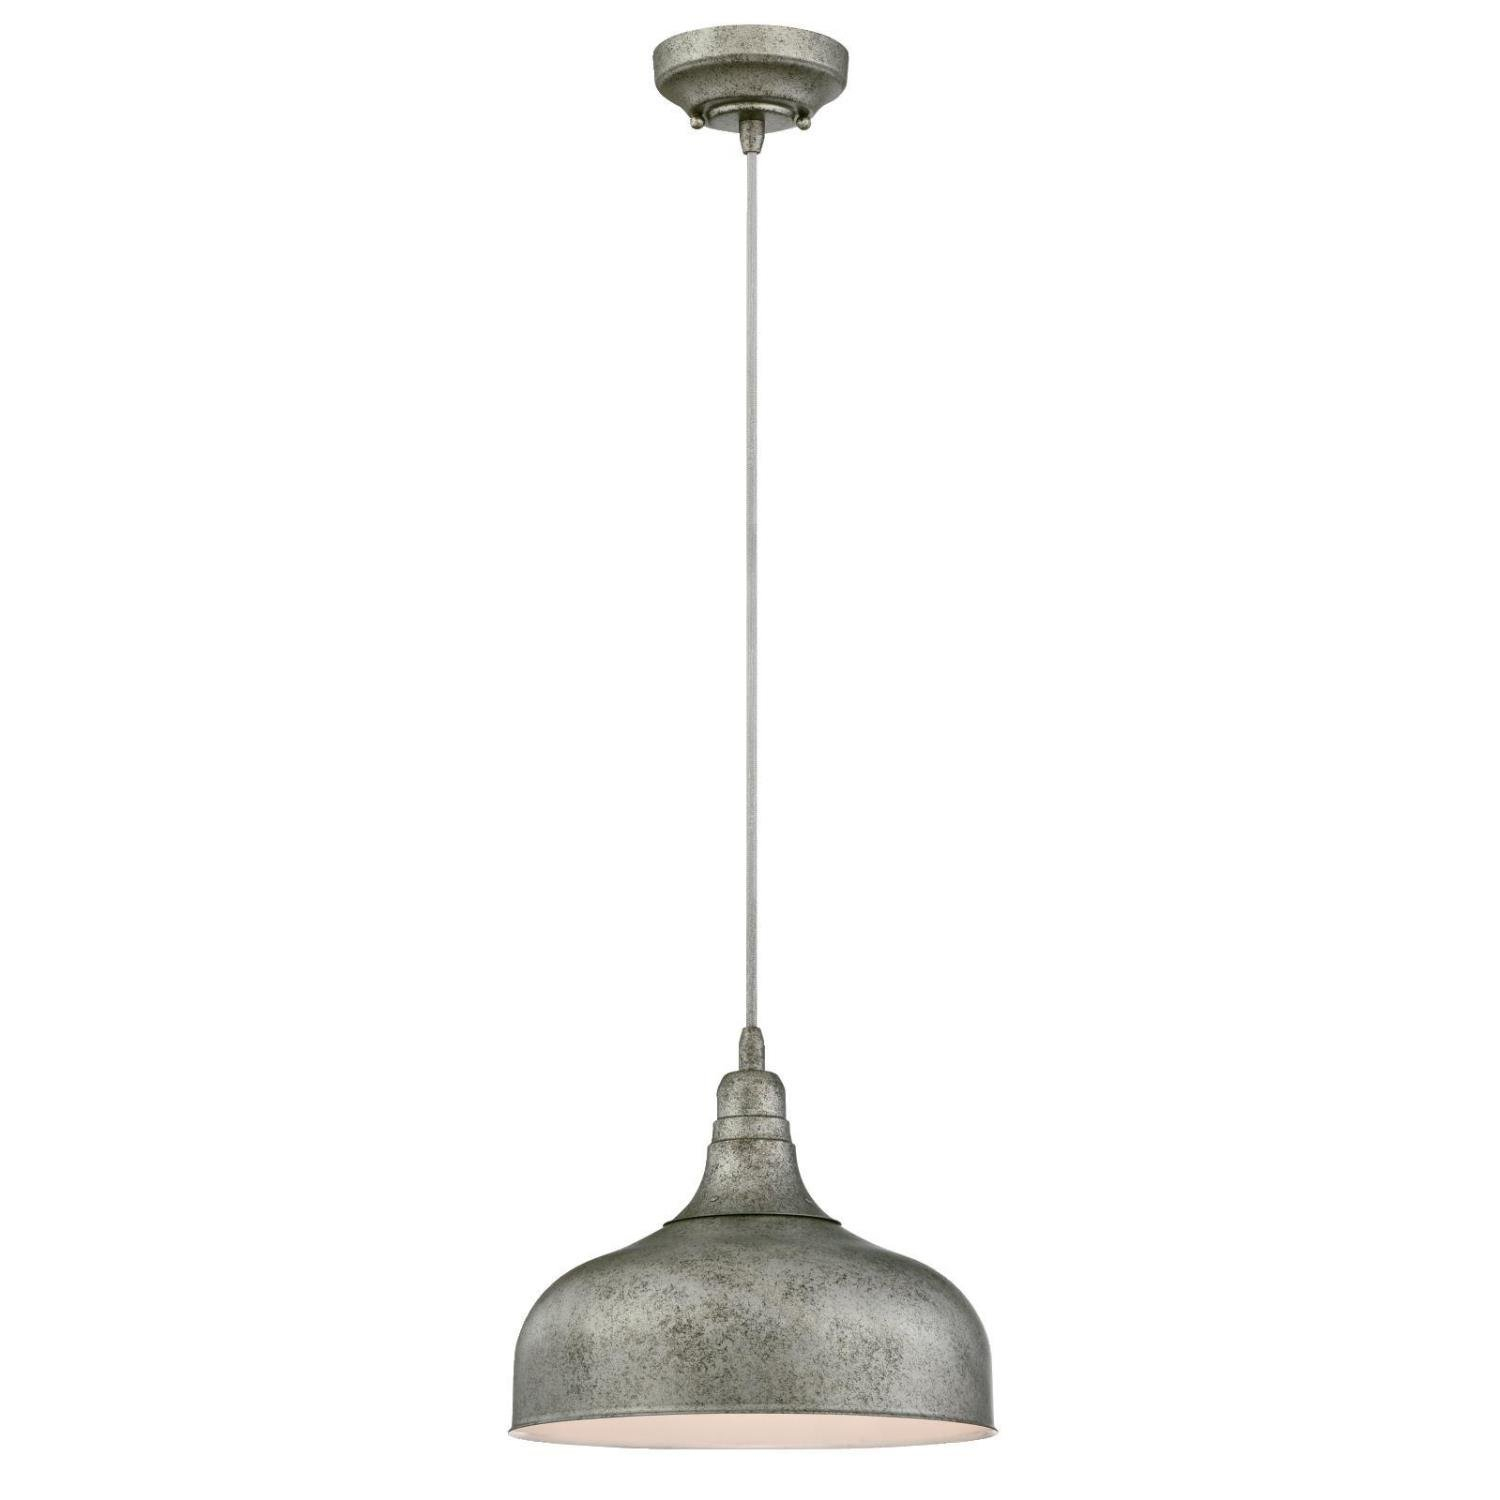 Gracie Oaks Burwan 1 Light Dome Pendant For Amara 3 Light Dome Pendants (Image 17 of 30)